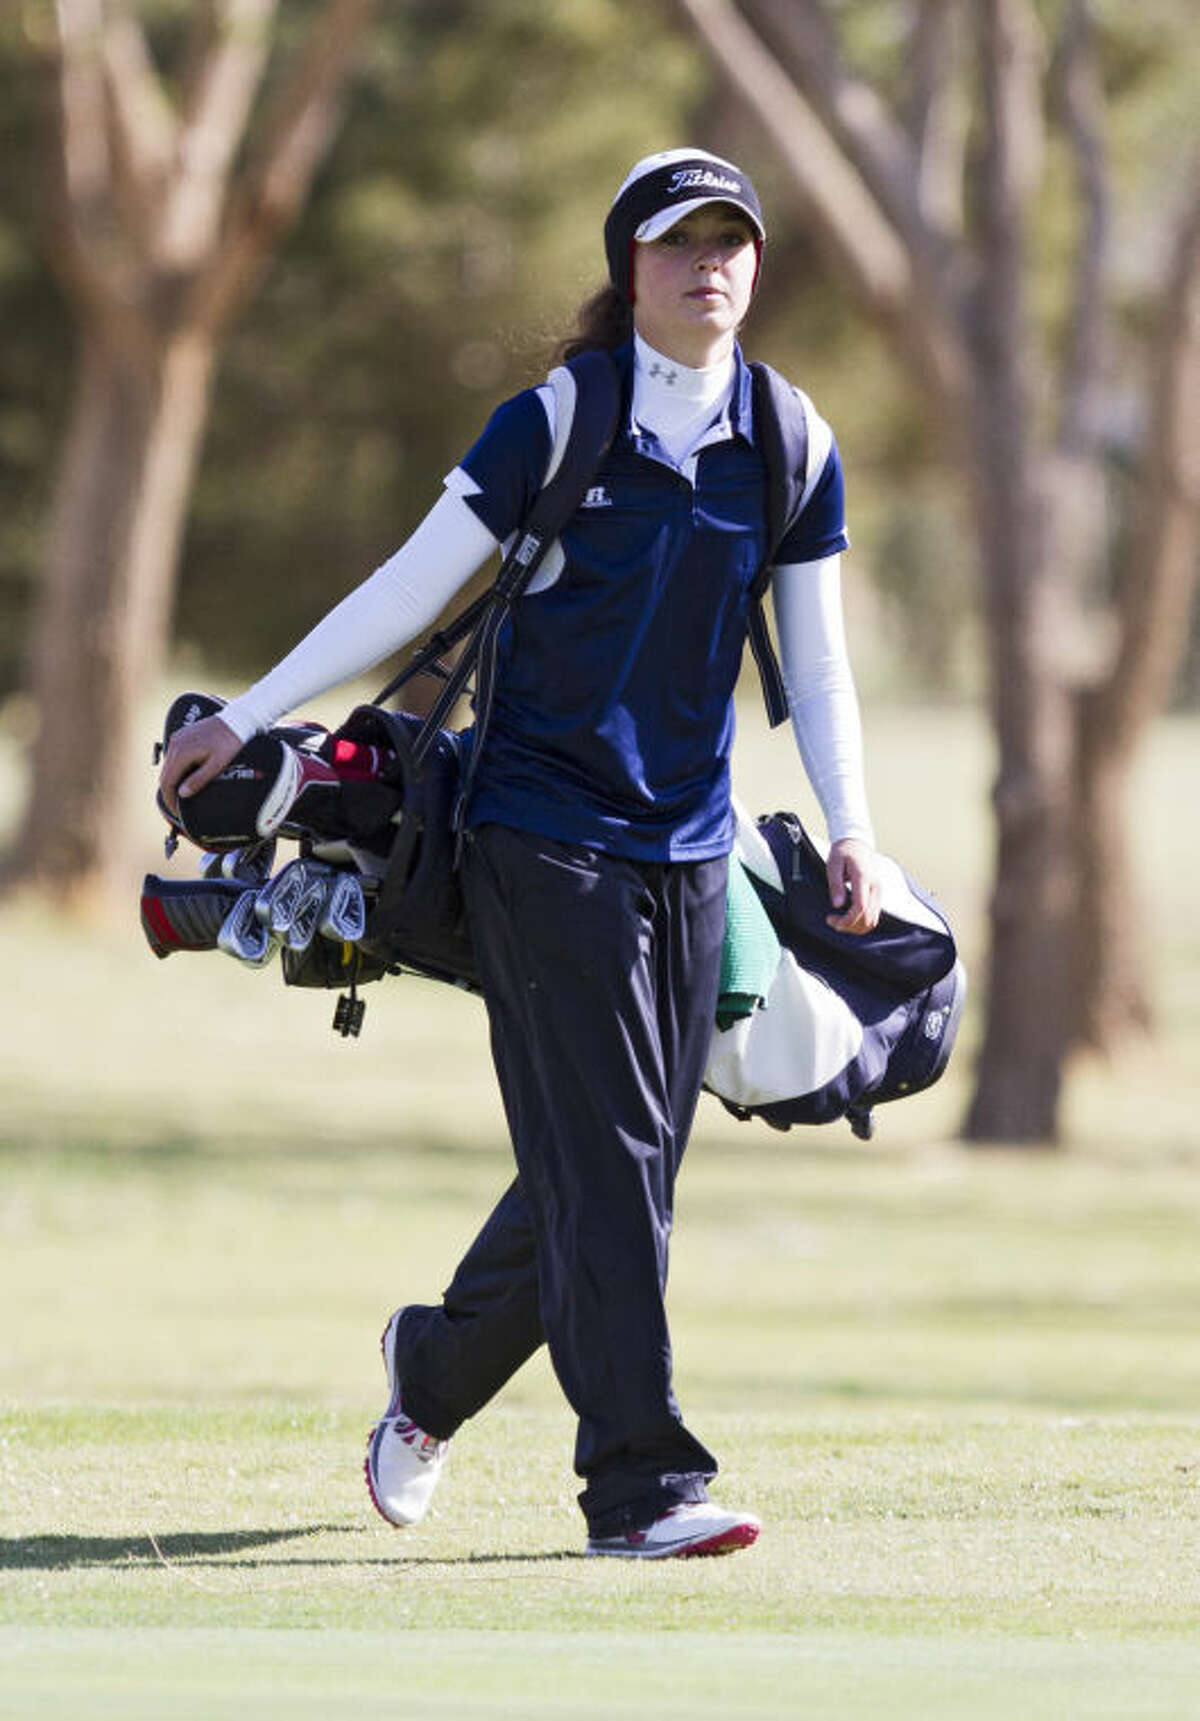 Greenwood's Ryan Pate walks down the fairway during the UIL Girls 3A Regional Golf Tournament on Thursday at Shadow Hills Golf Course in Lubbock. Pate scored a 67 in the final round of the tournament and qualified for the state tournament.